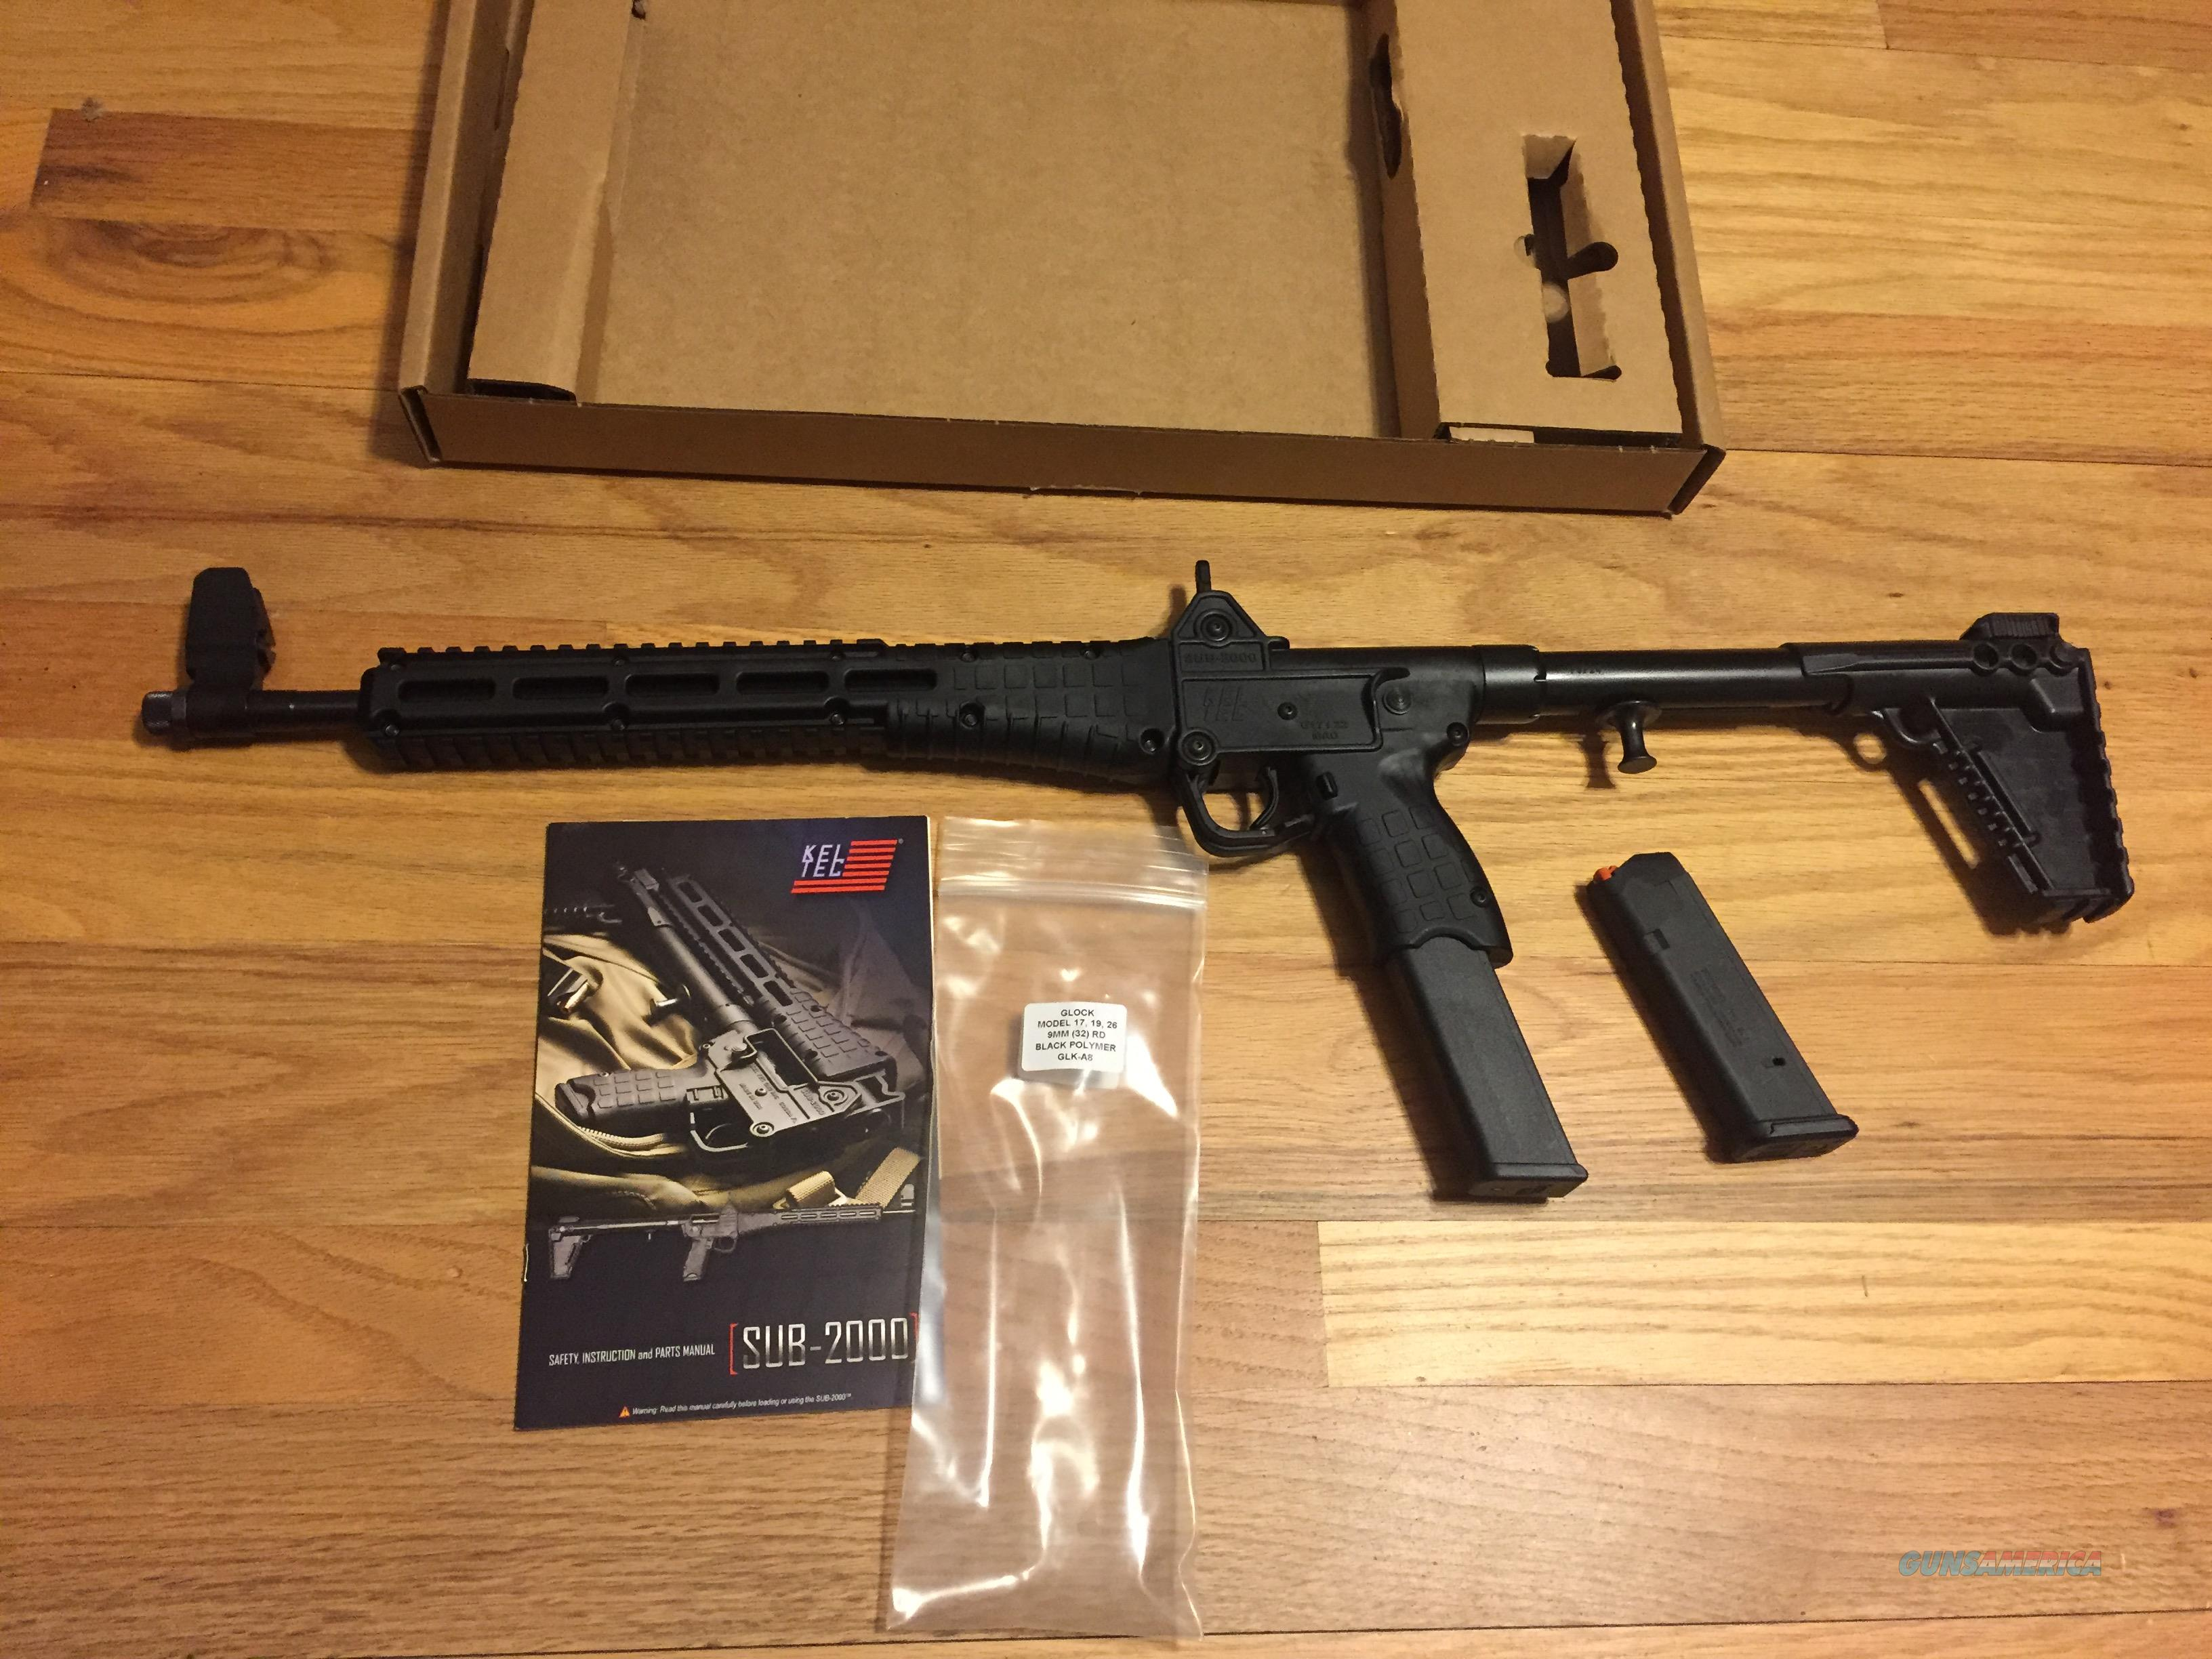 Kel-Tec Sub 2k 9mm Gen 2 uses Glock 17 magazines Sub 2000 G17  New in box (no card fees added at Deals on Guns)  Guns > Rifles > Kel-Tec Rifles